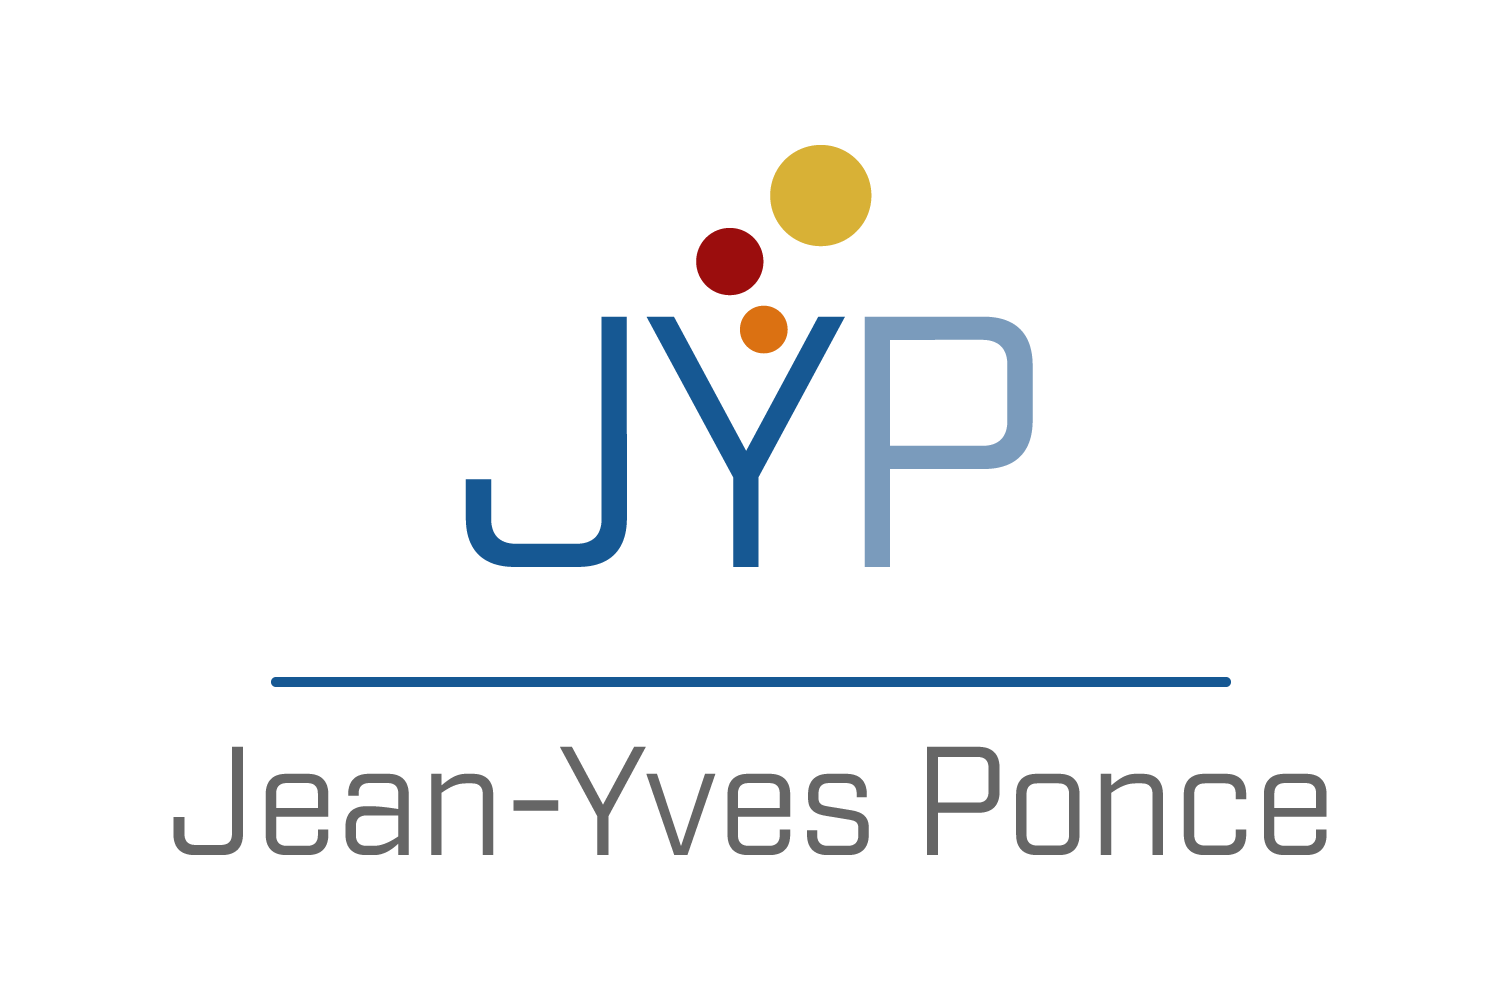 Jean Yves Ponce